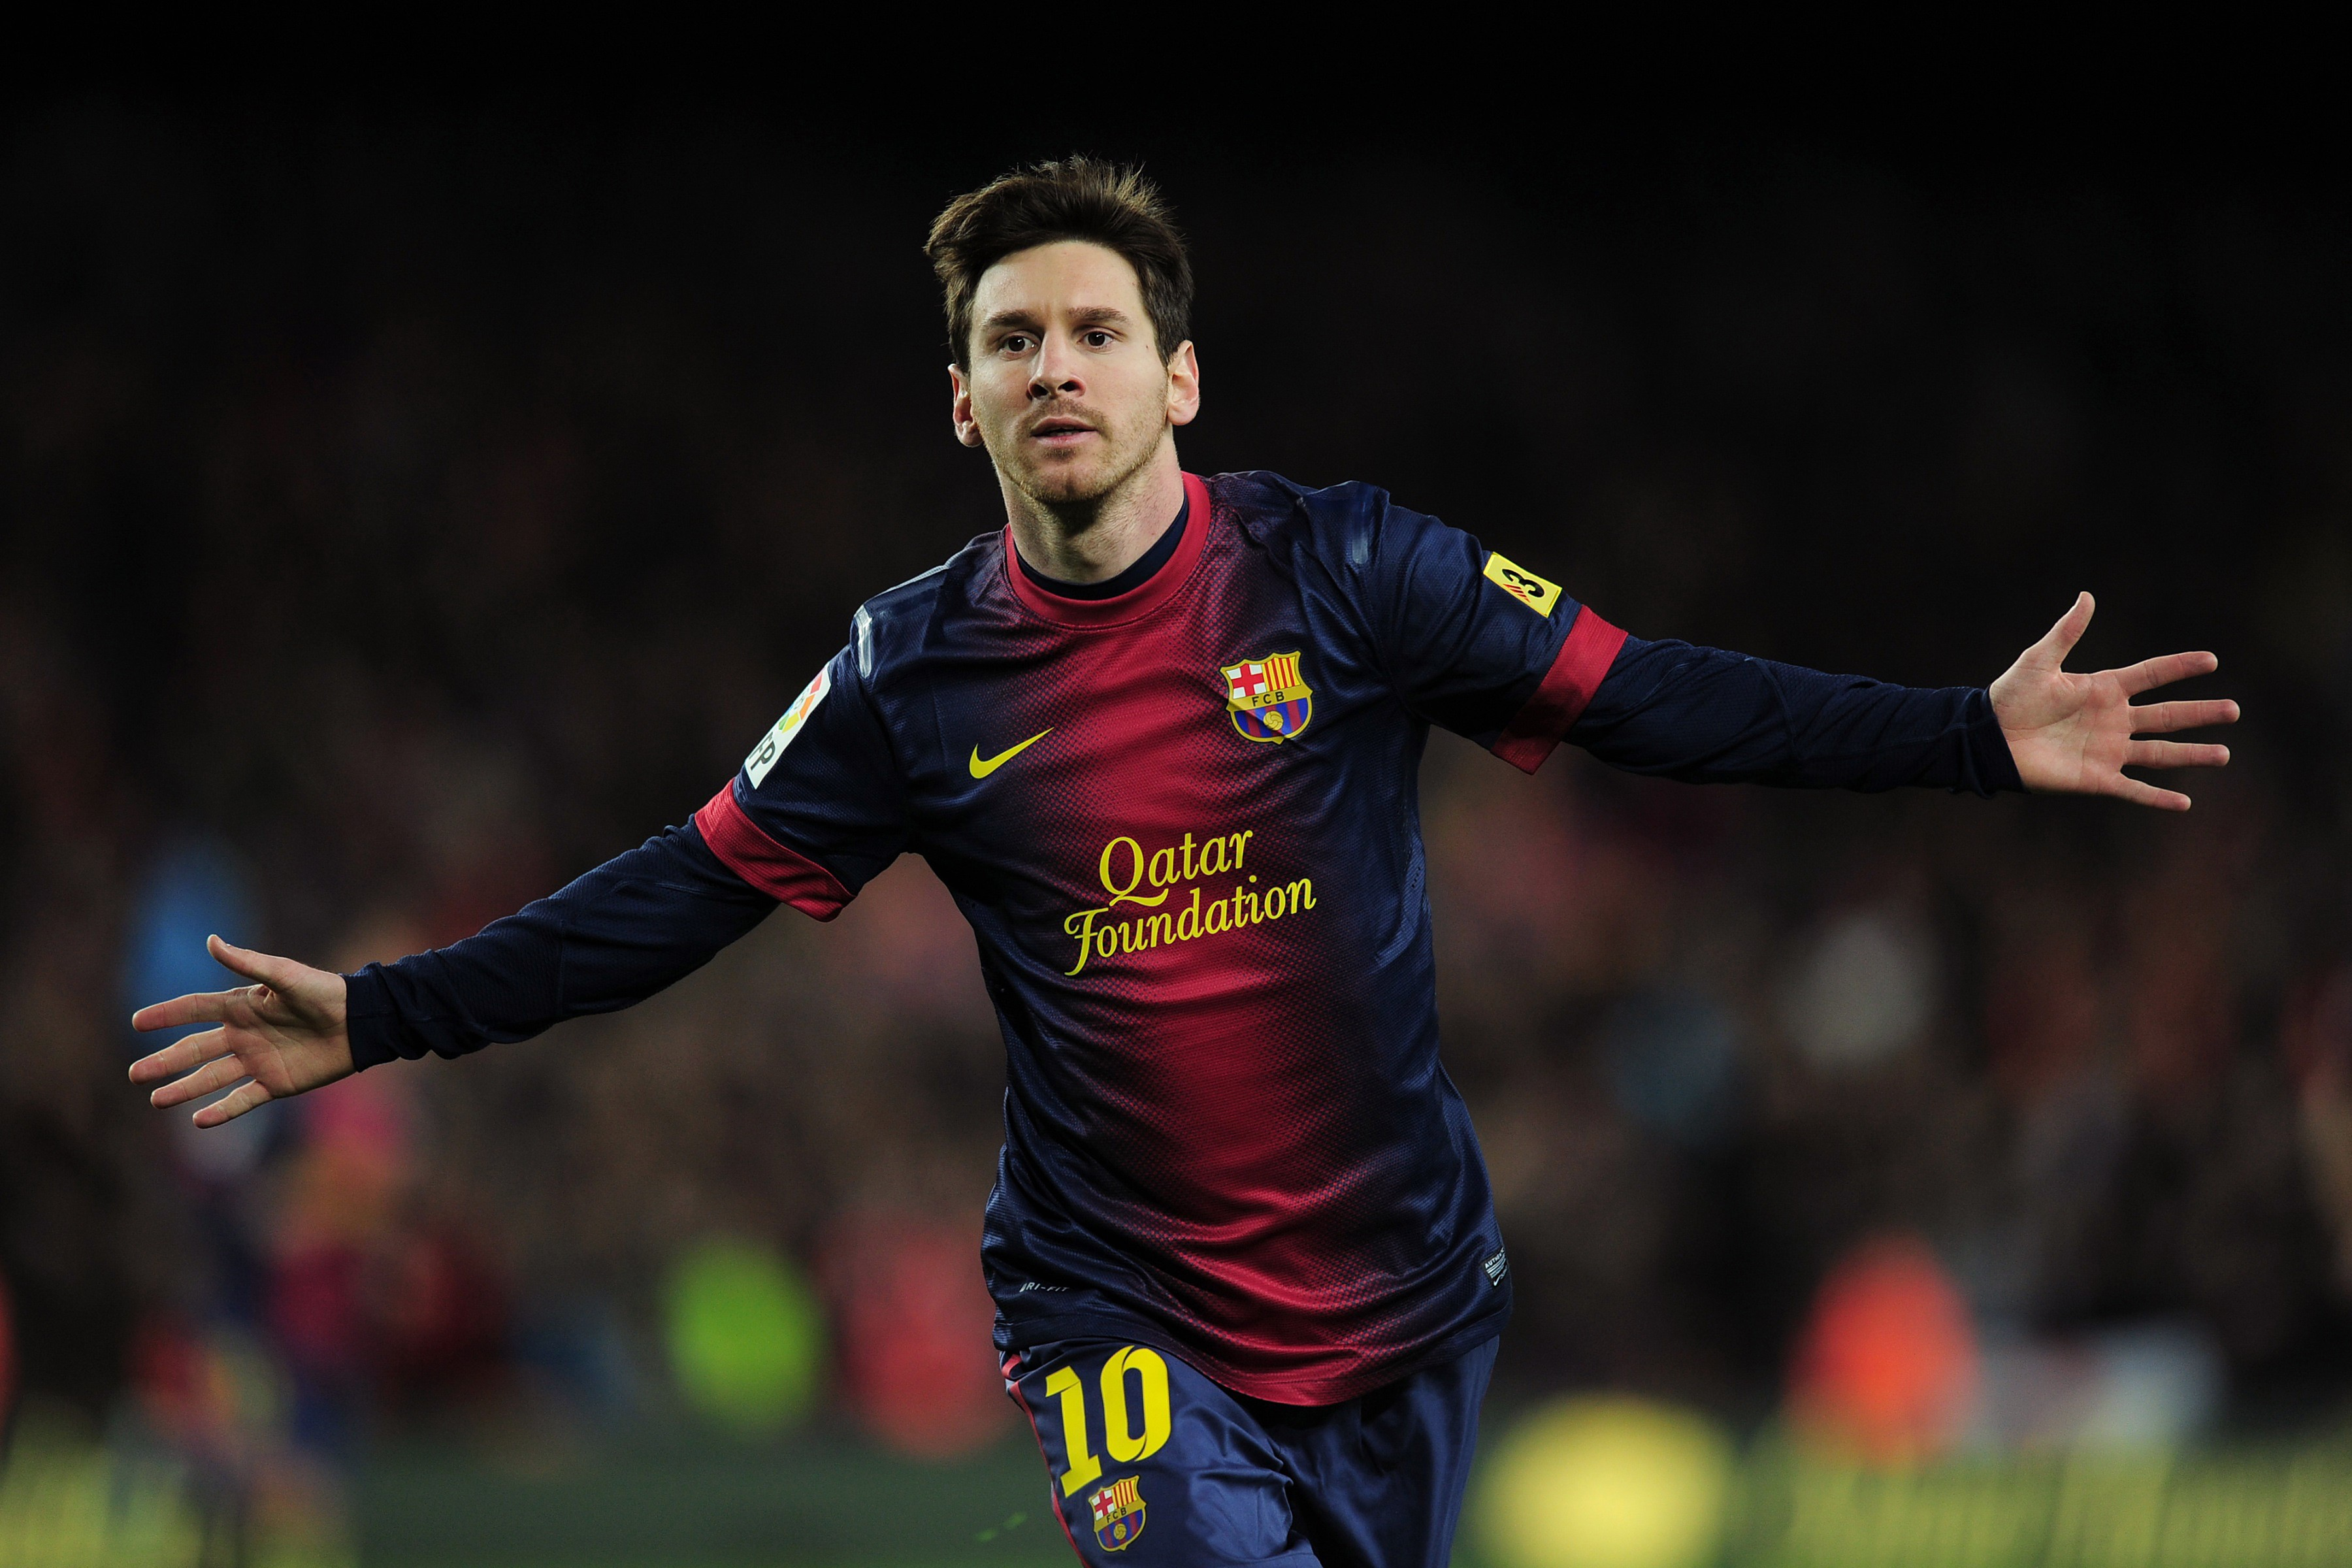 36 Messi Hd Wallpapers   ImgHD Browse and Download Images and 3600x2400